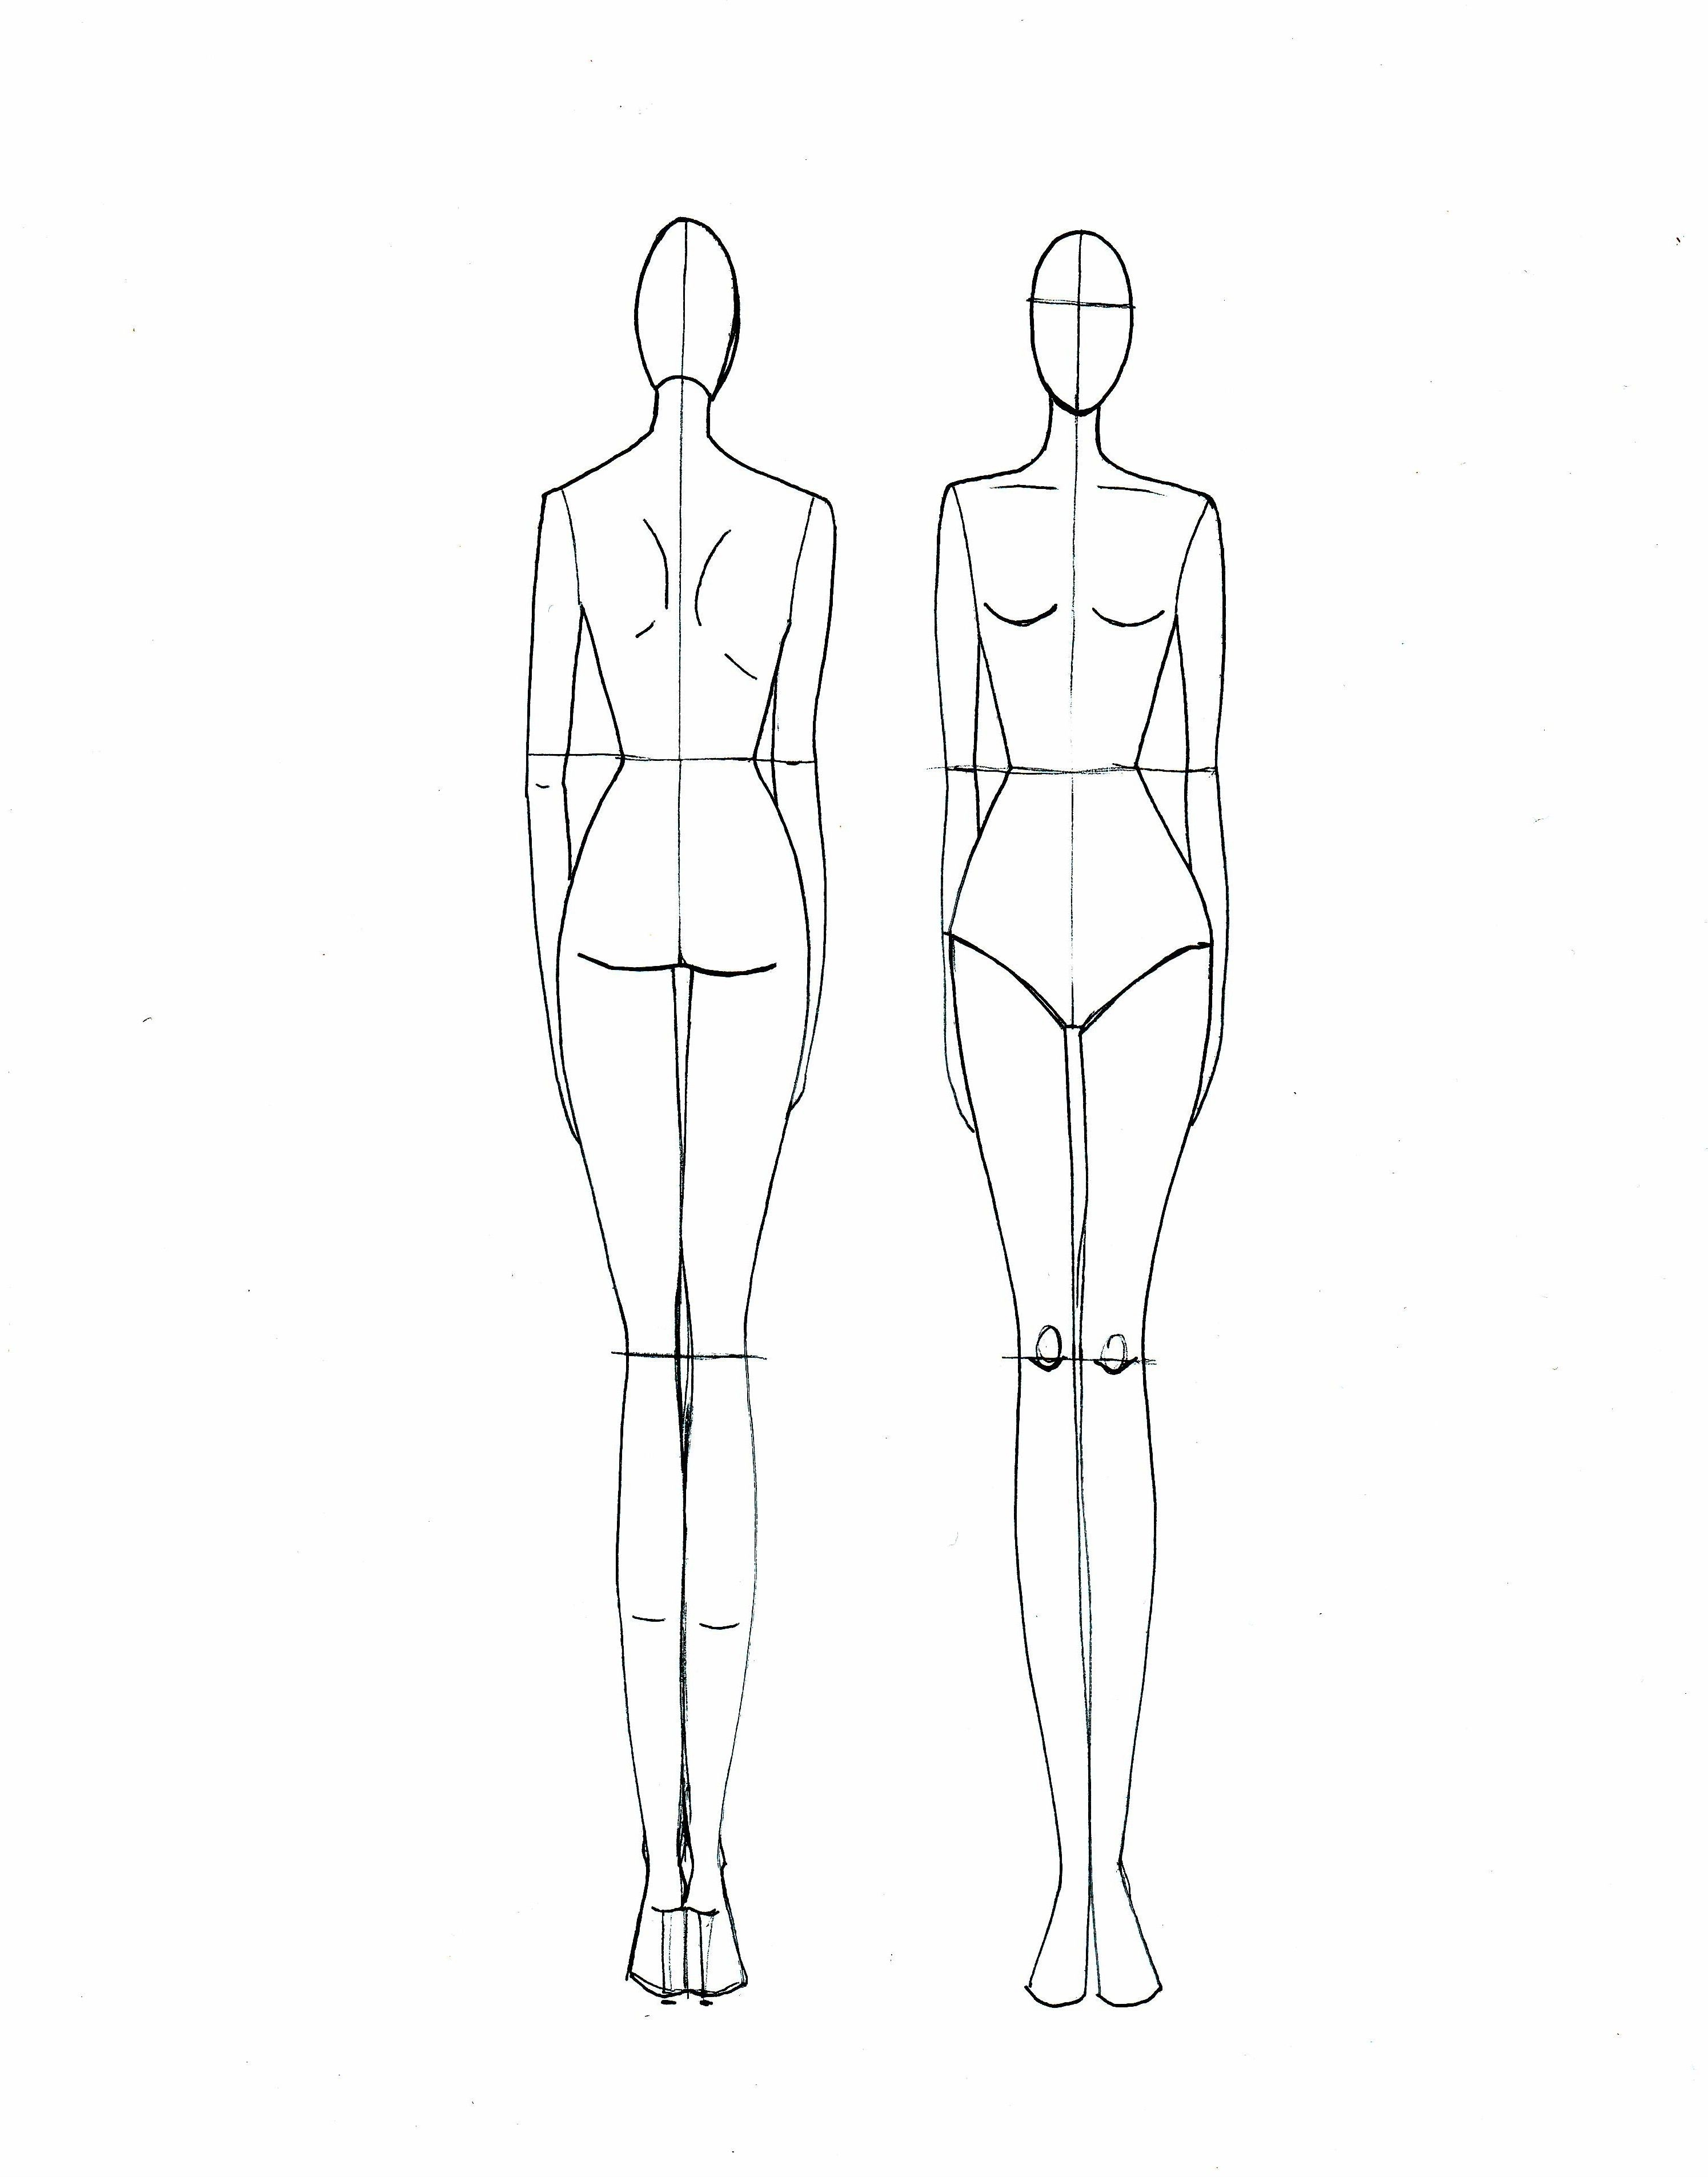 Body Sketch Template At Paintingvalley   Explore Collection Of - Free Printable Fashion Model Templates